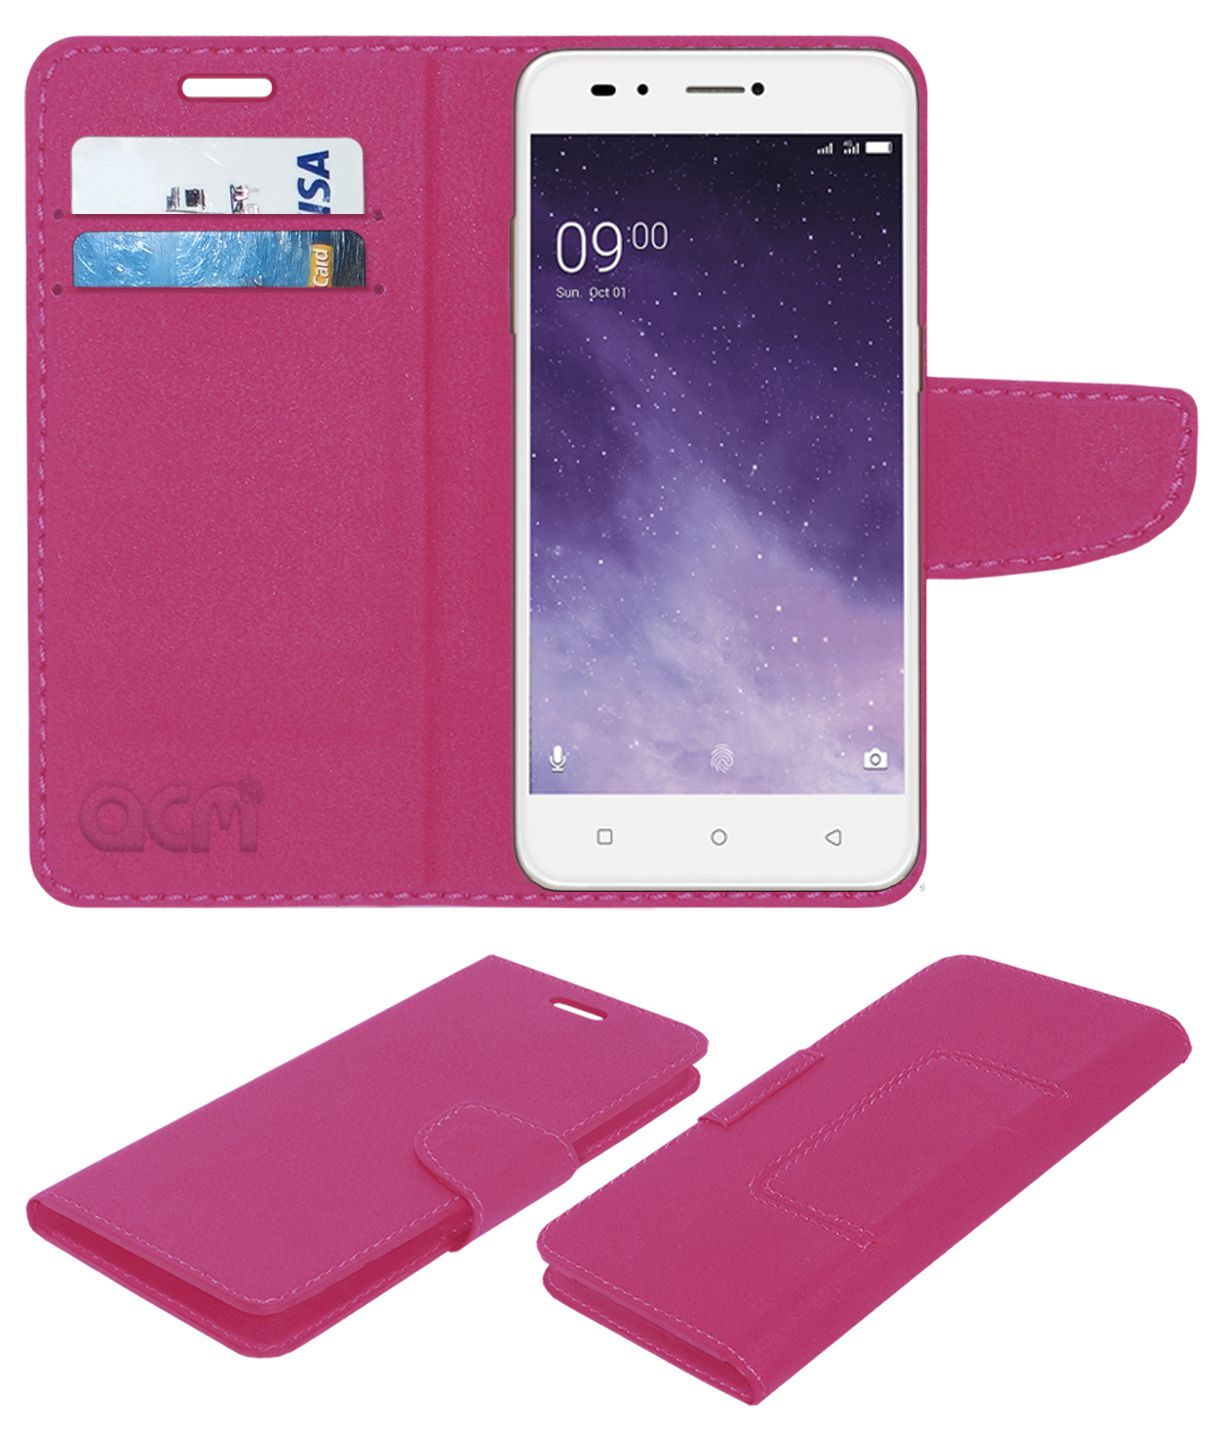 new product 6ec81 0459a Lava Z90 Flip Cover by ACM - Pink